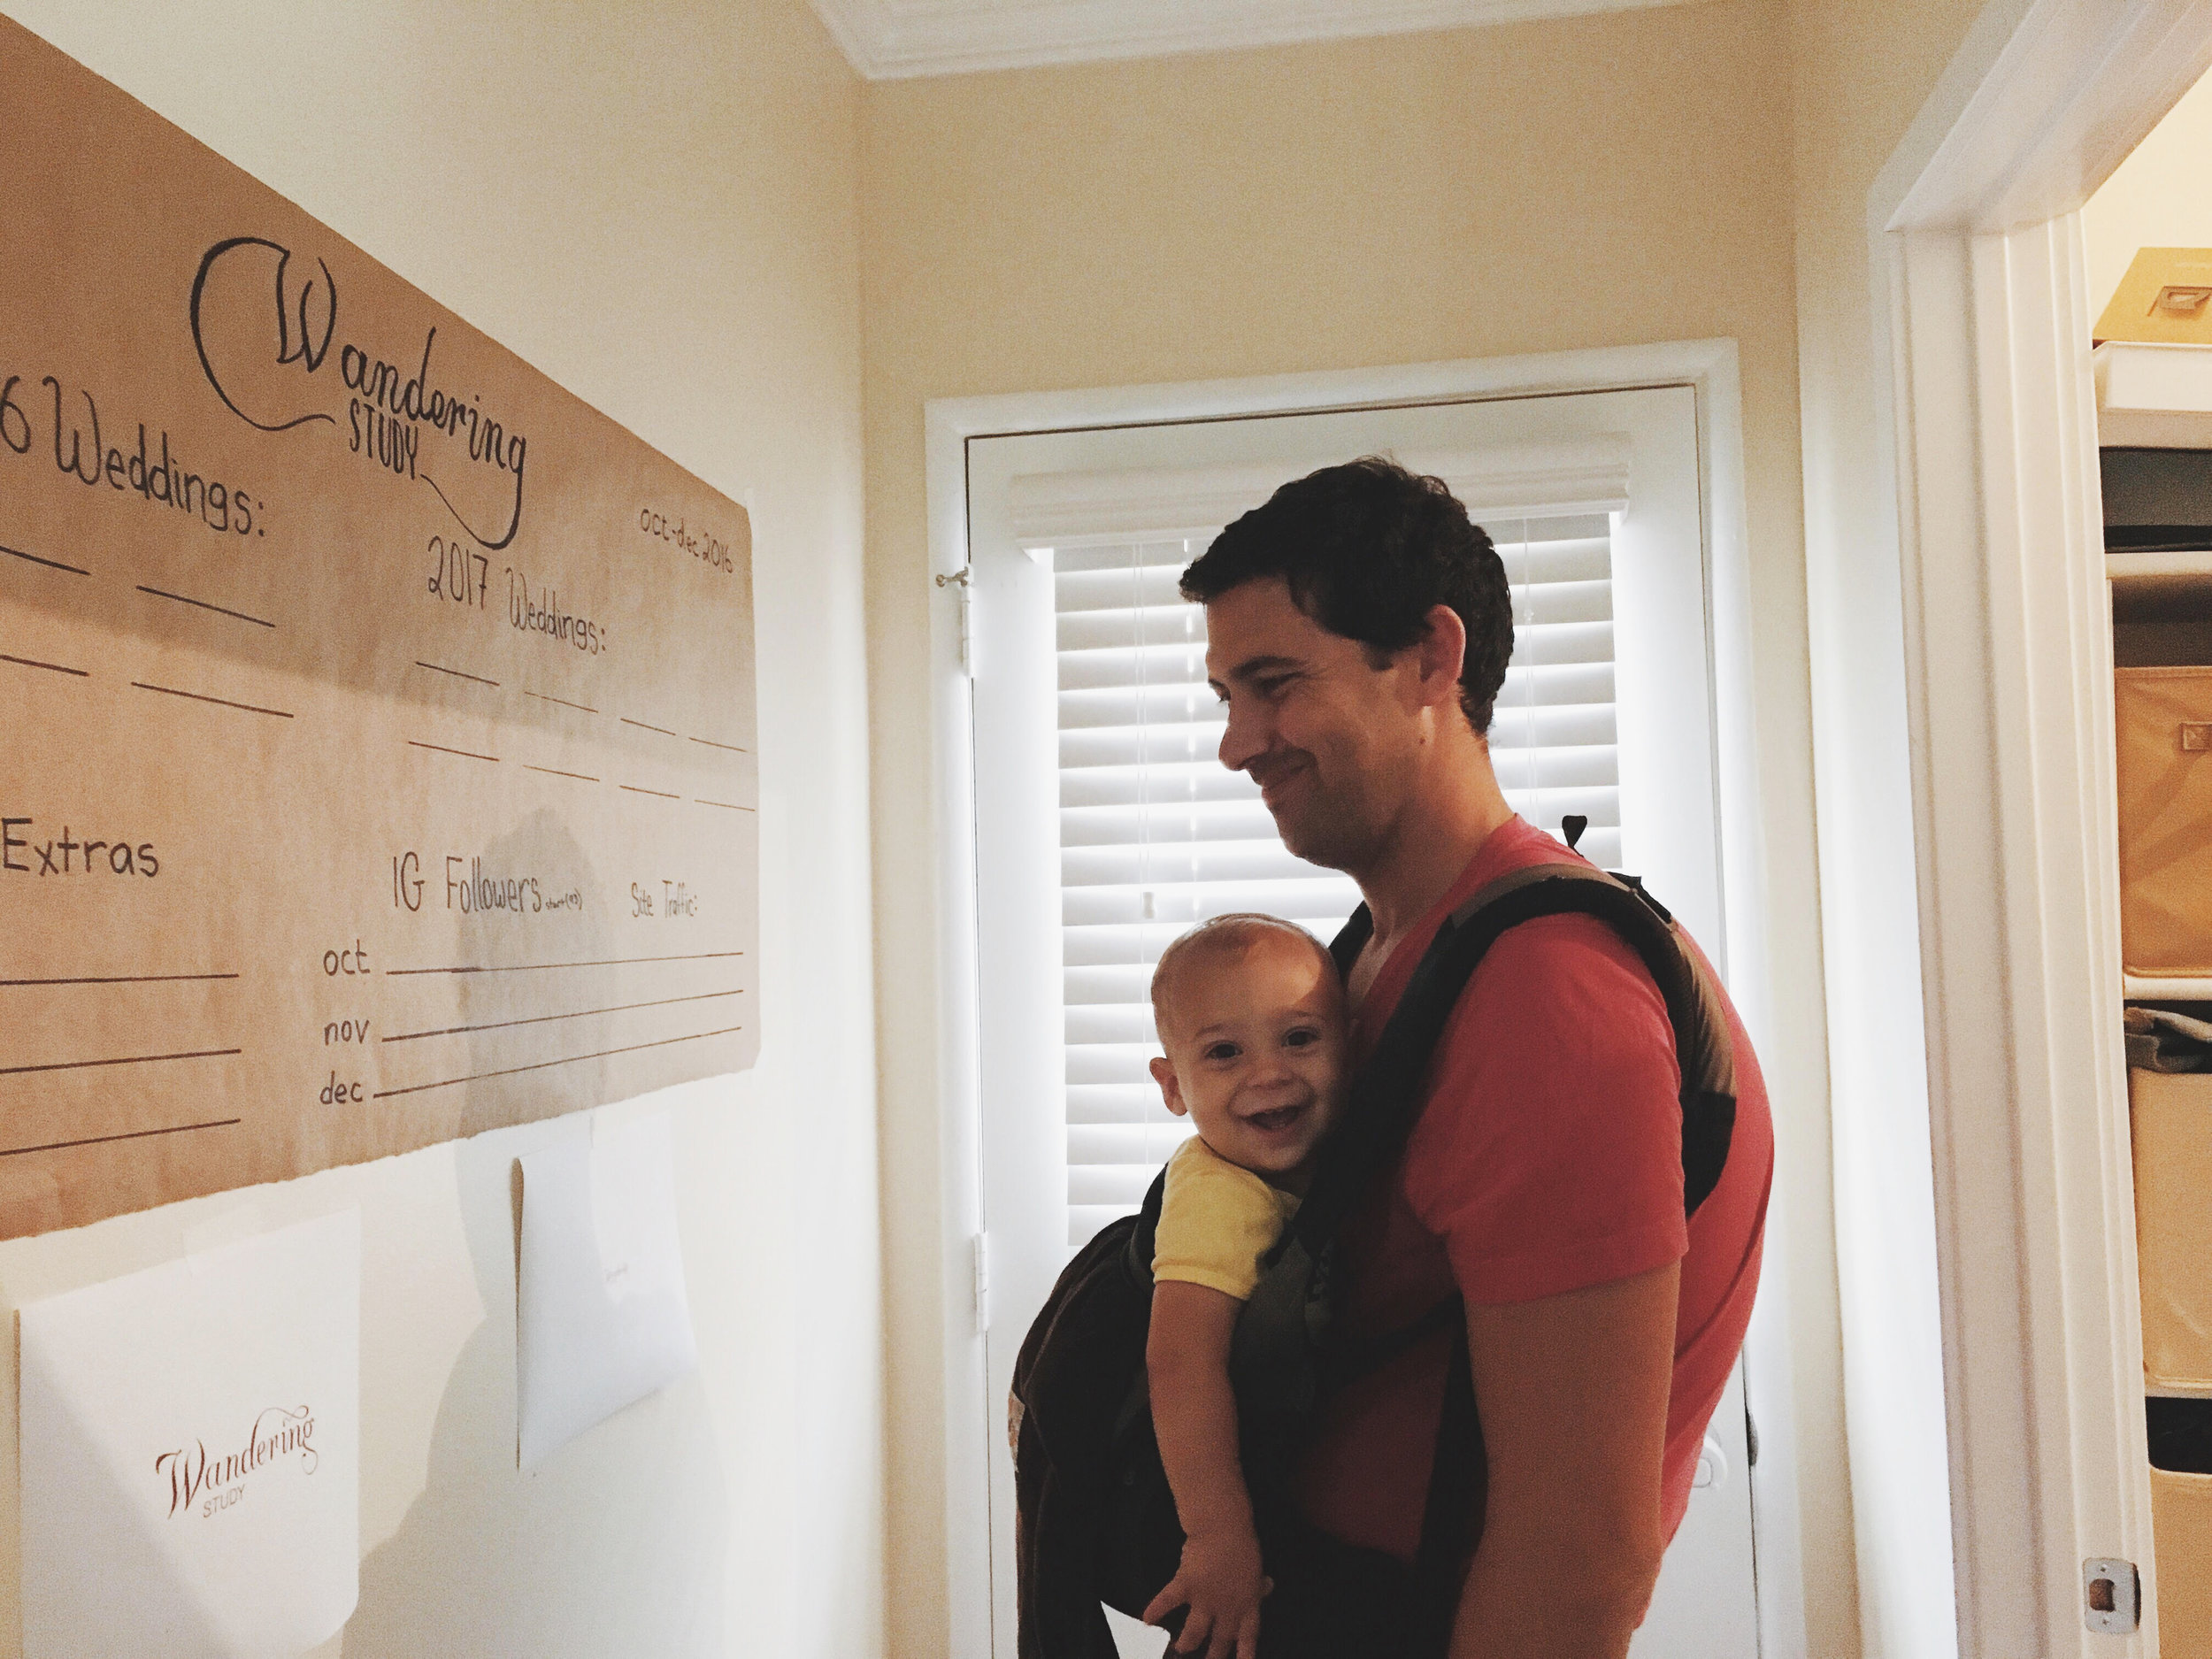 wandering_study_video_small_business_with_kids_at_home_babywearing